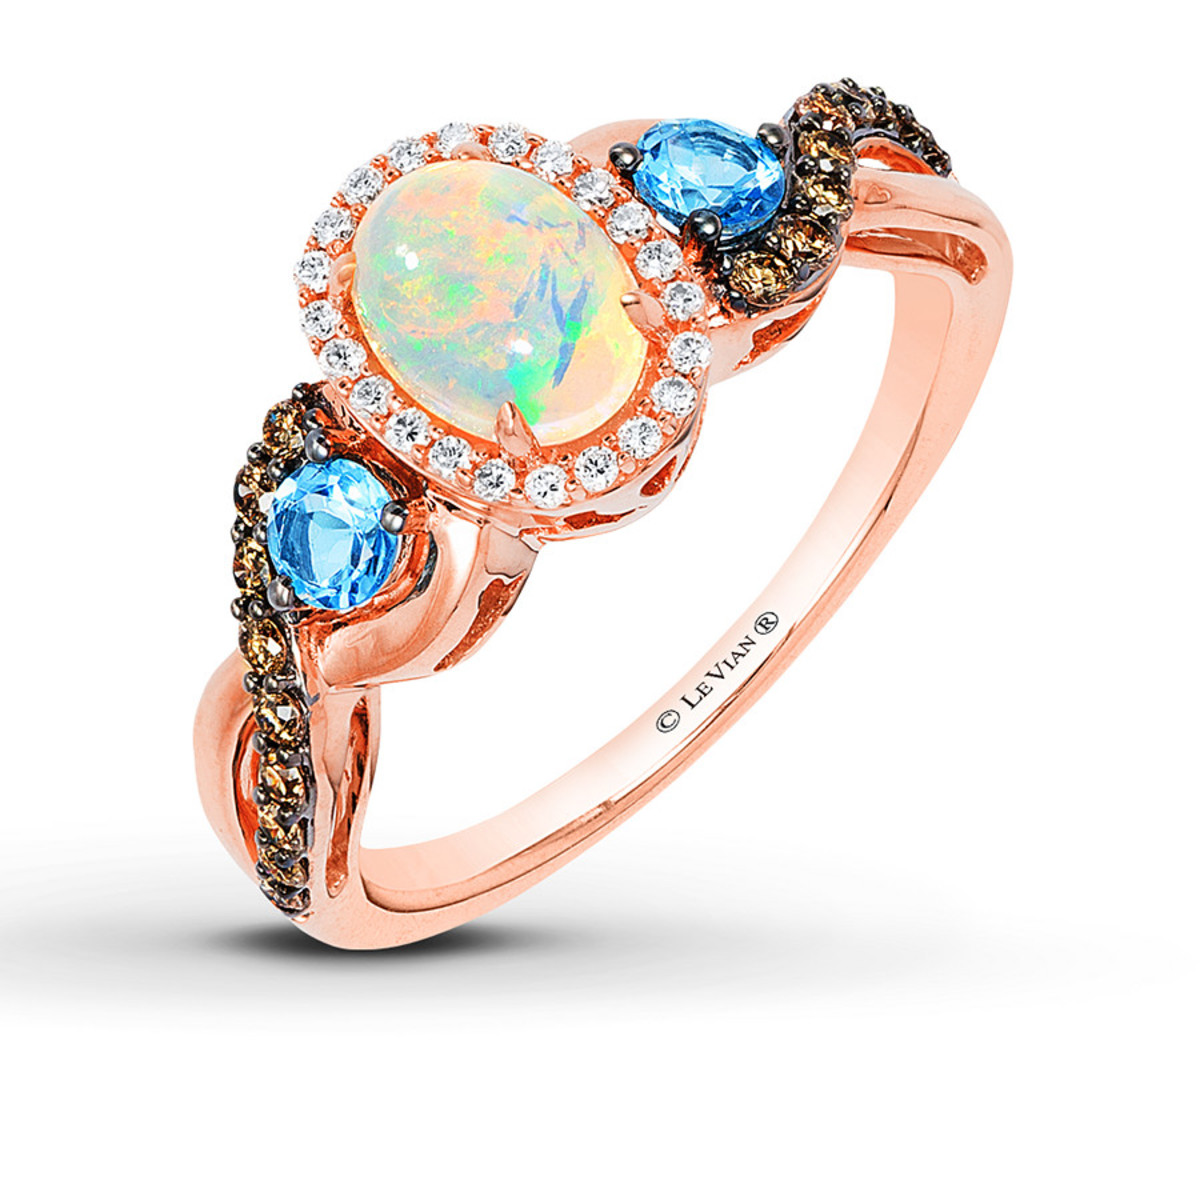 Le Vian Opal Ring Review: Why This Ring Was A Scam